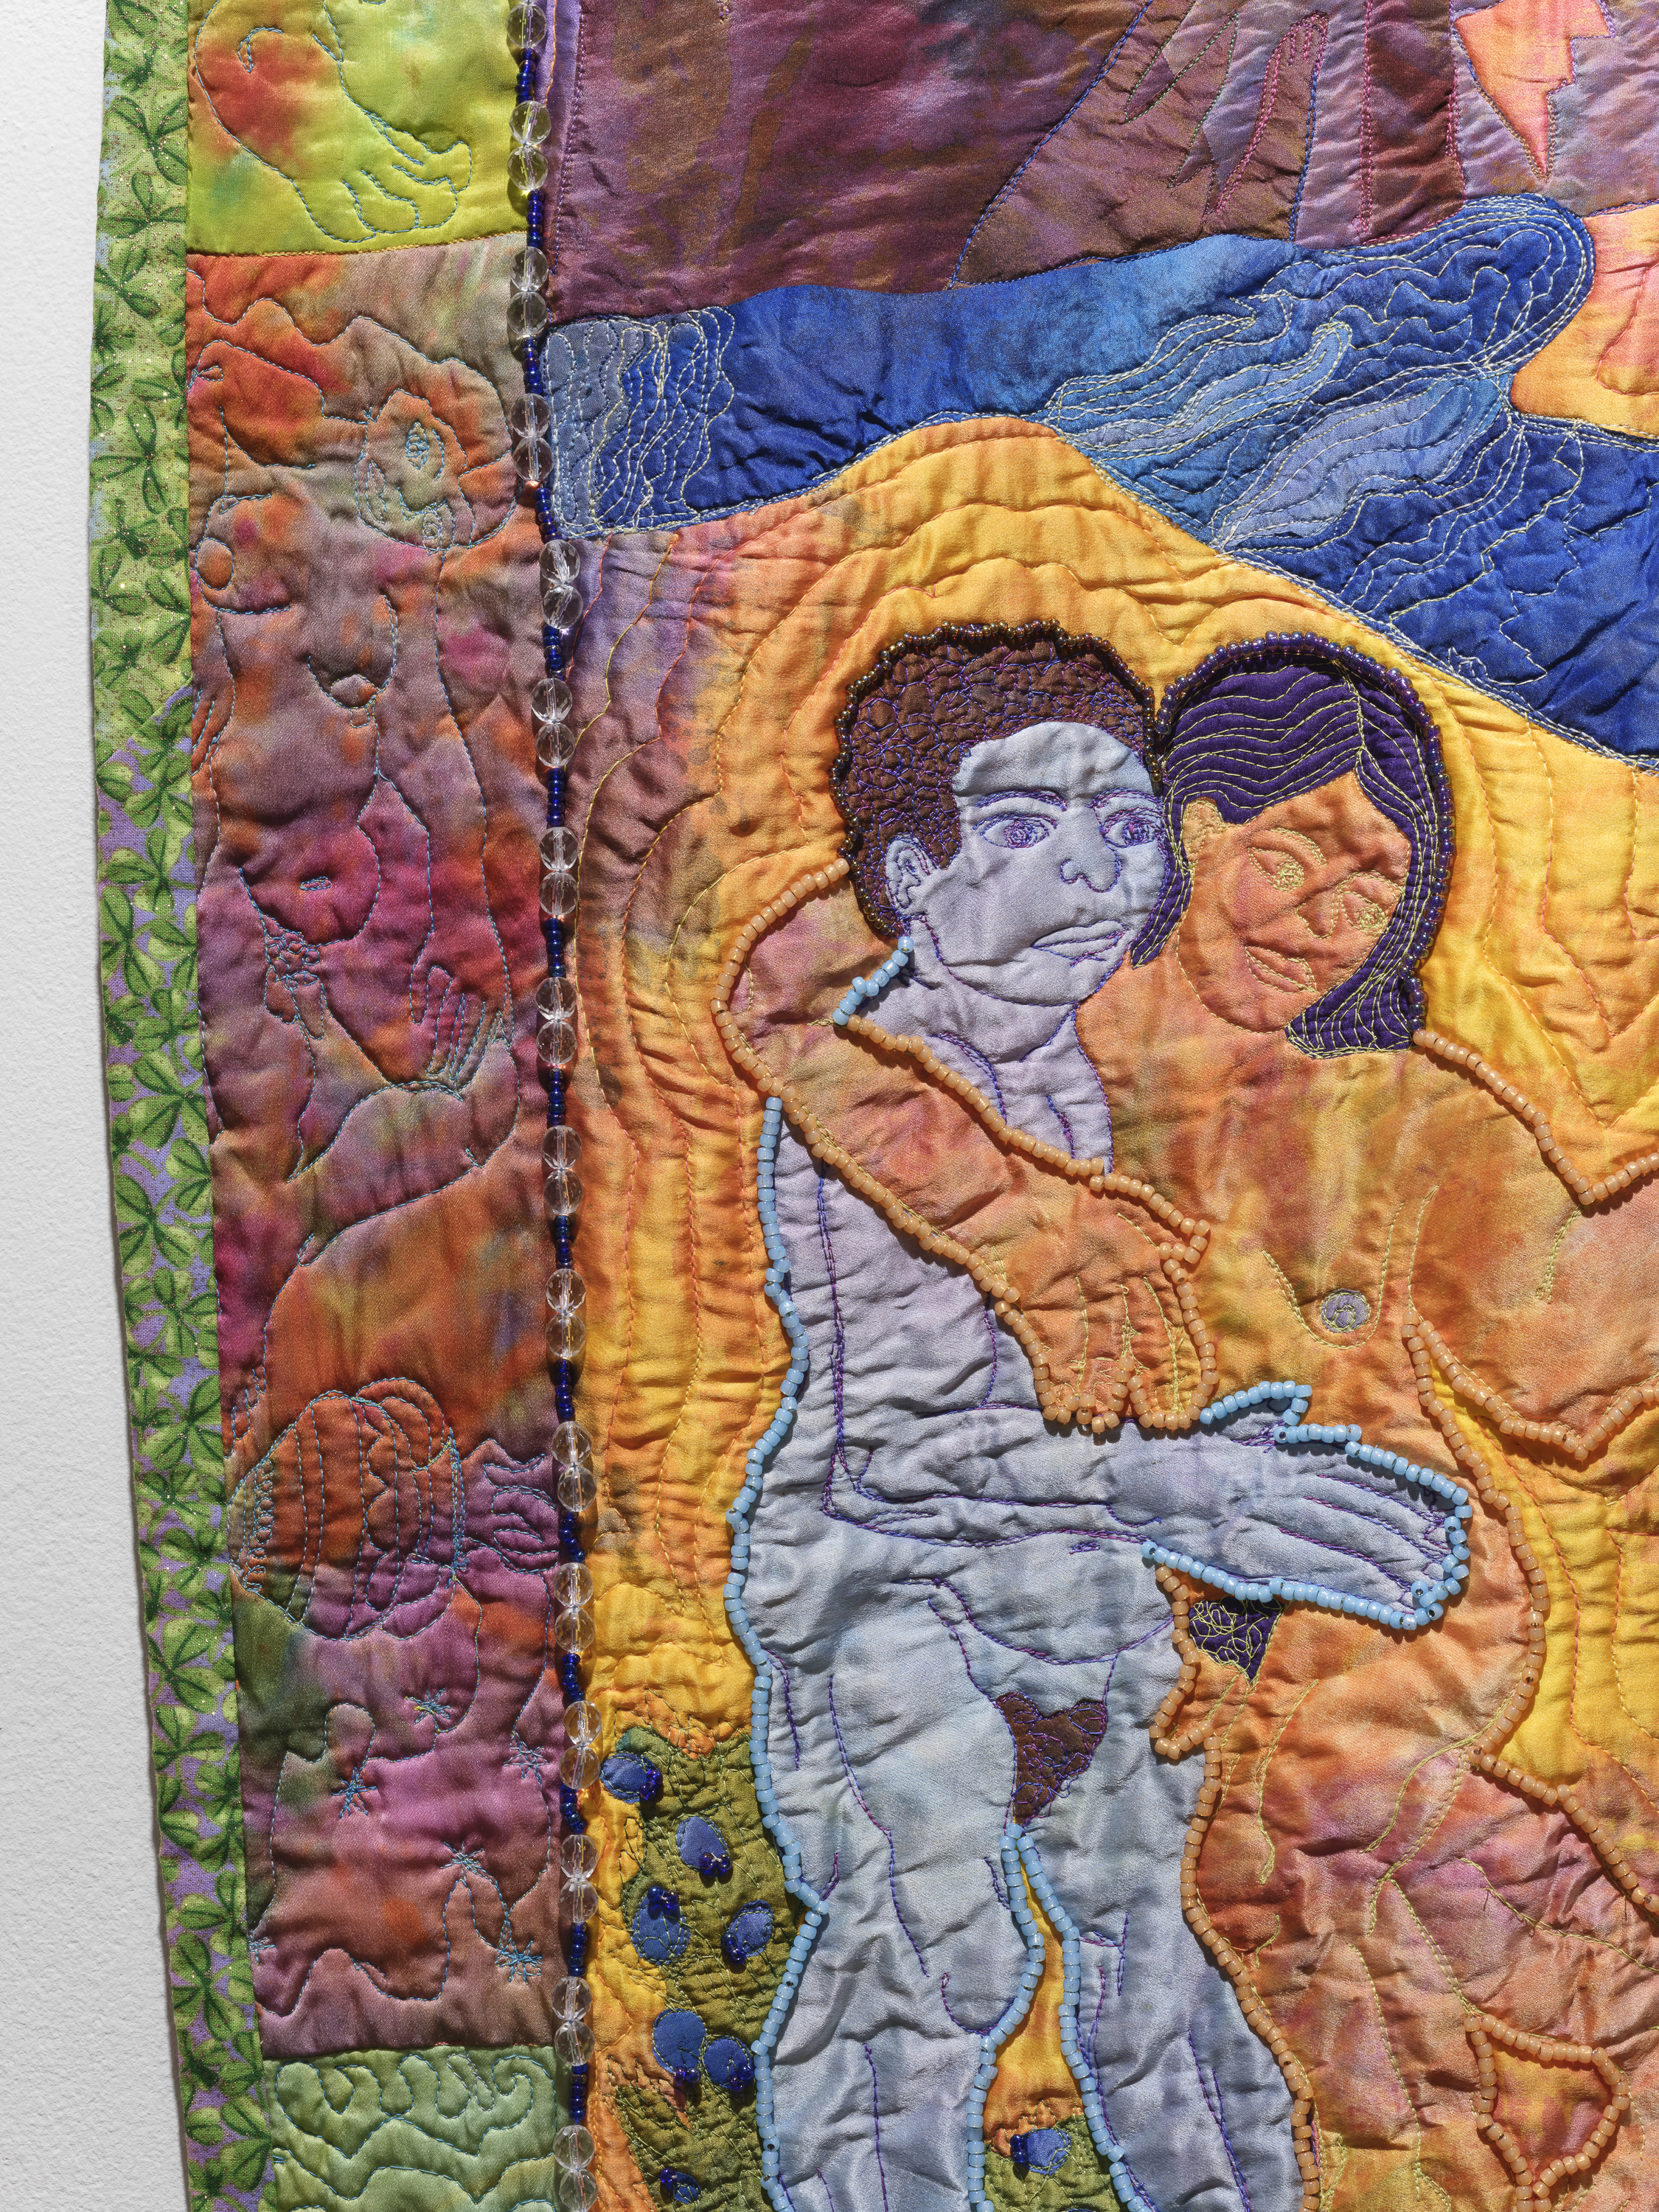 Close up of colorful, beaded artwork depicting a couple holding each other.